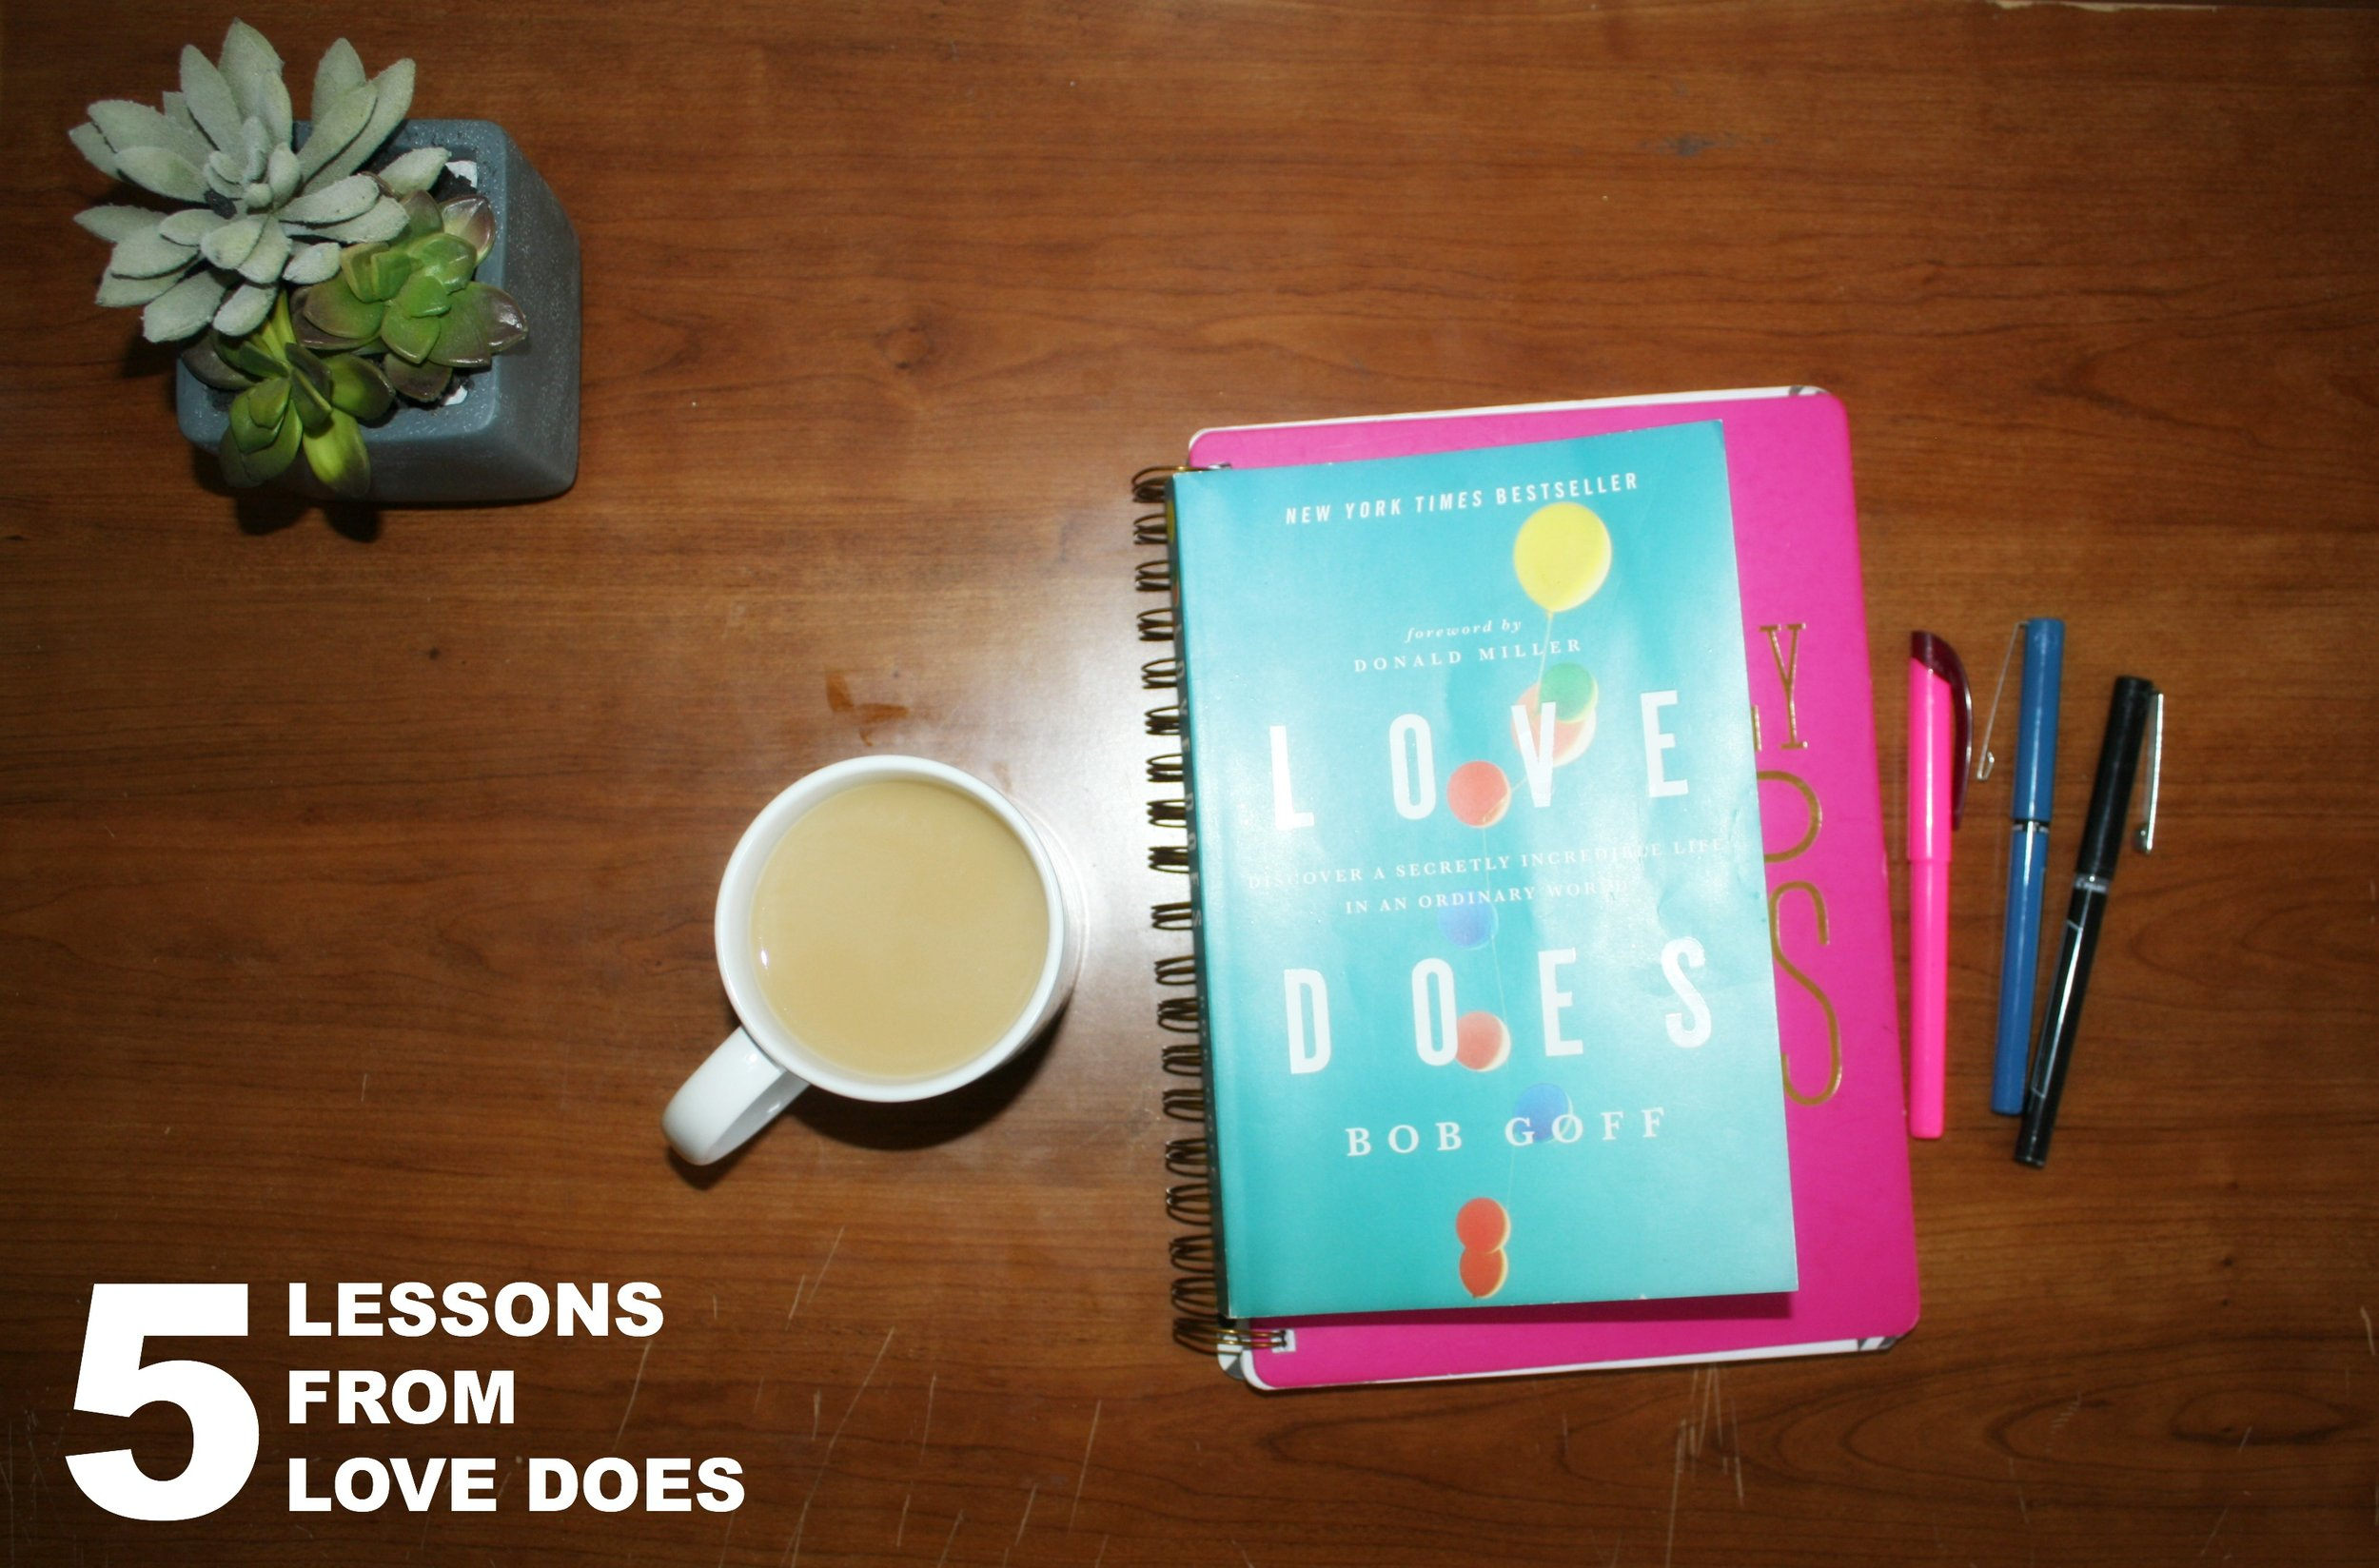 Lessons from Love Does